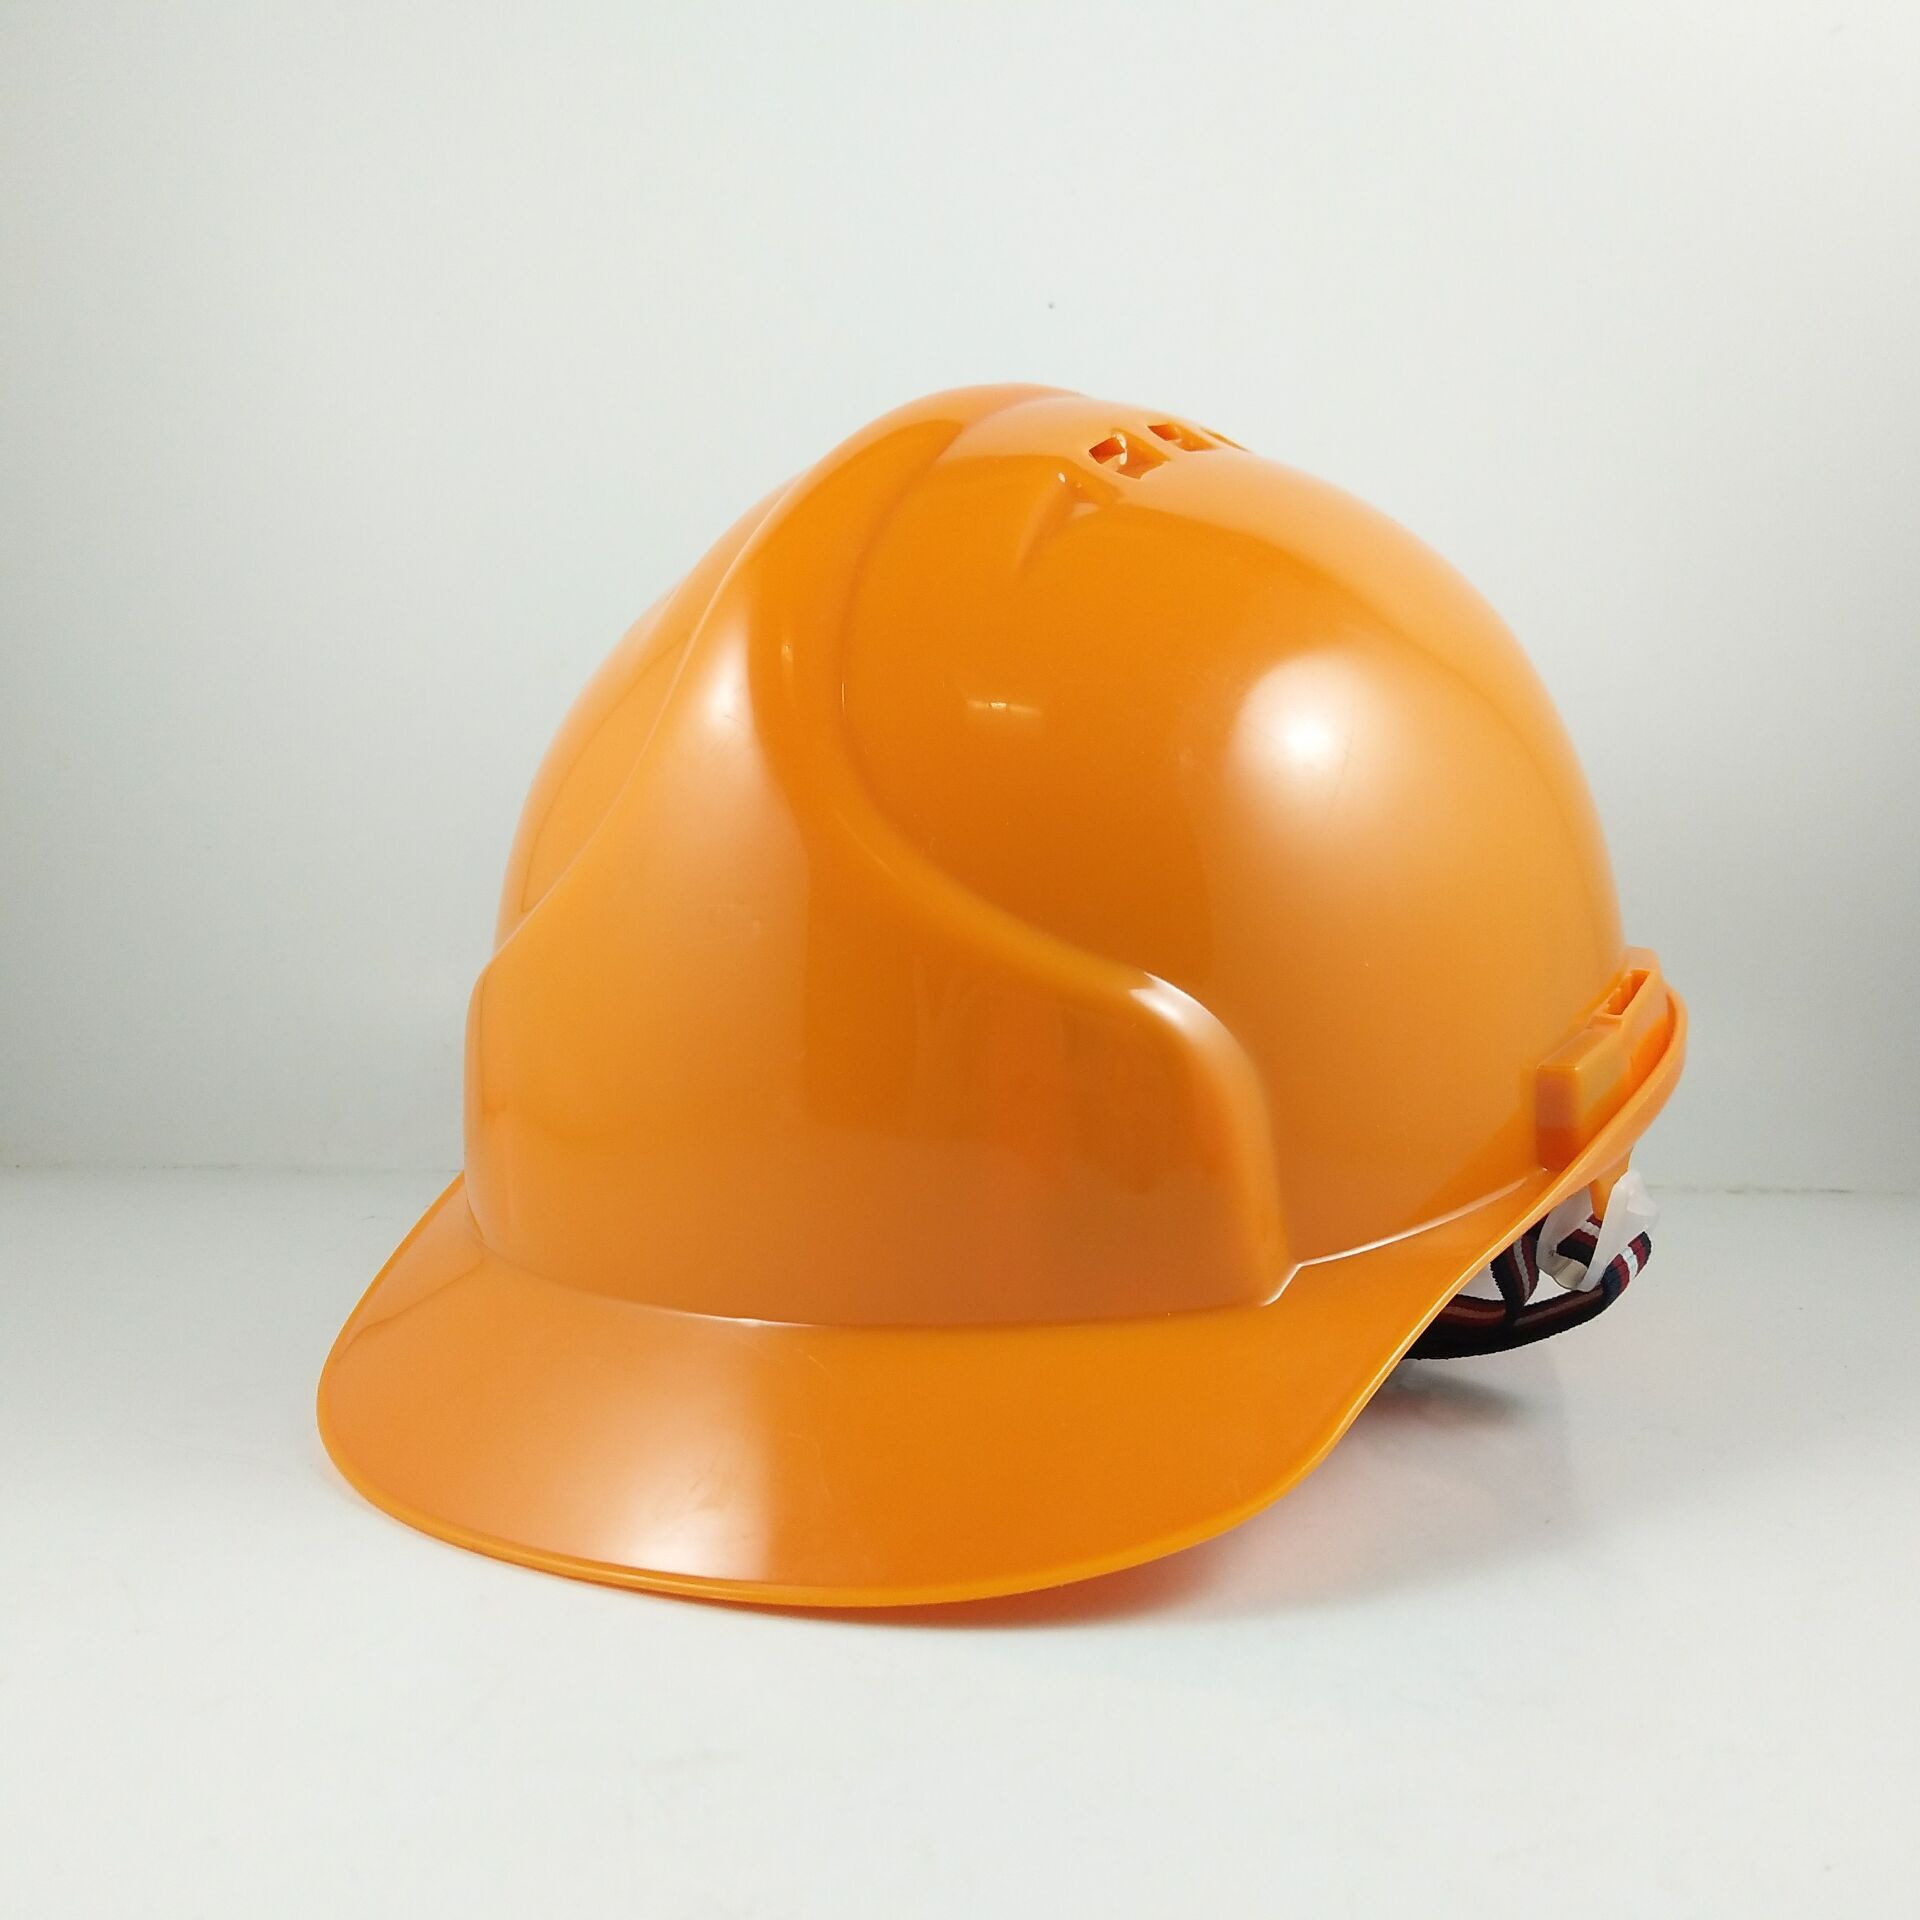 Manufacturers 9999 Work Site Protective Cap Plastic Helmet PE Safety Helmet Sun Hat Customizable Engineering Use Hat Architectur